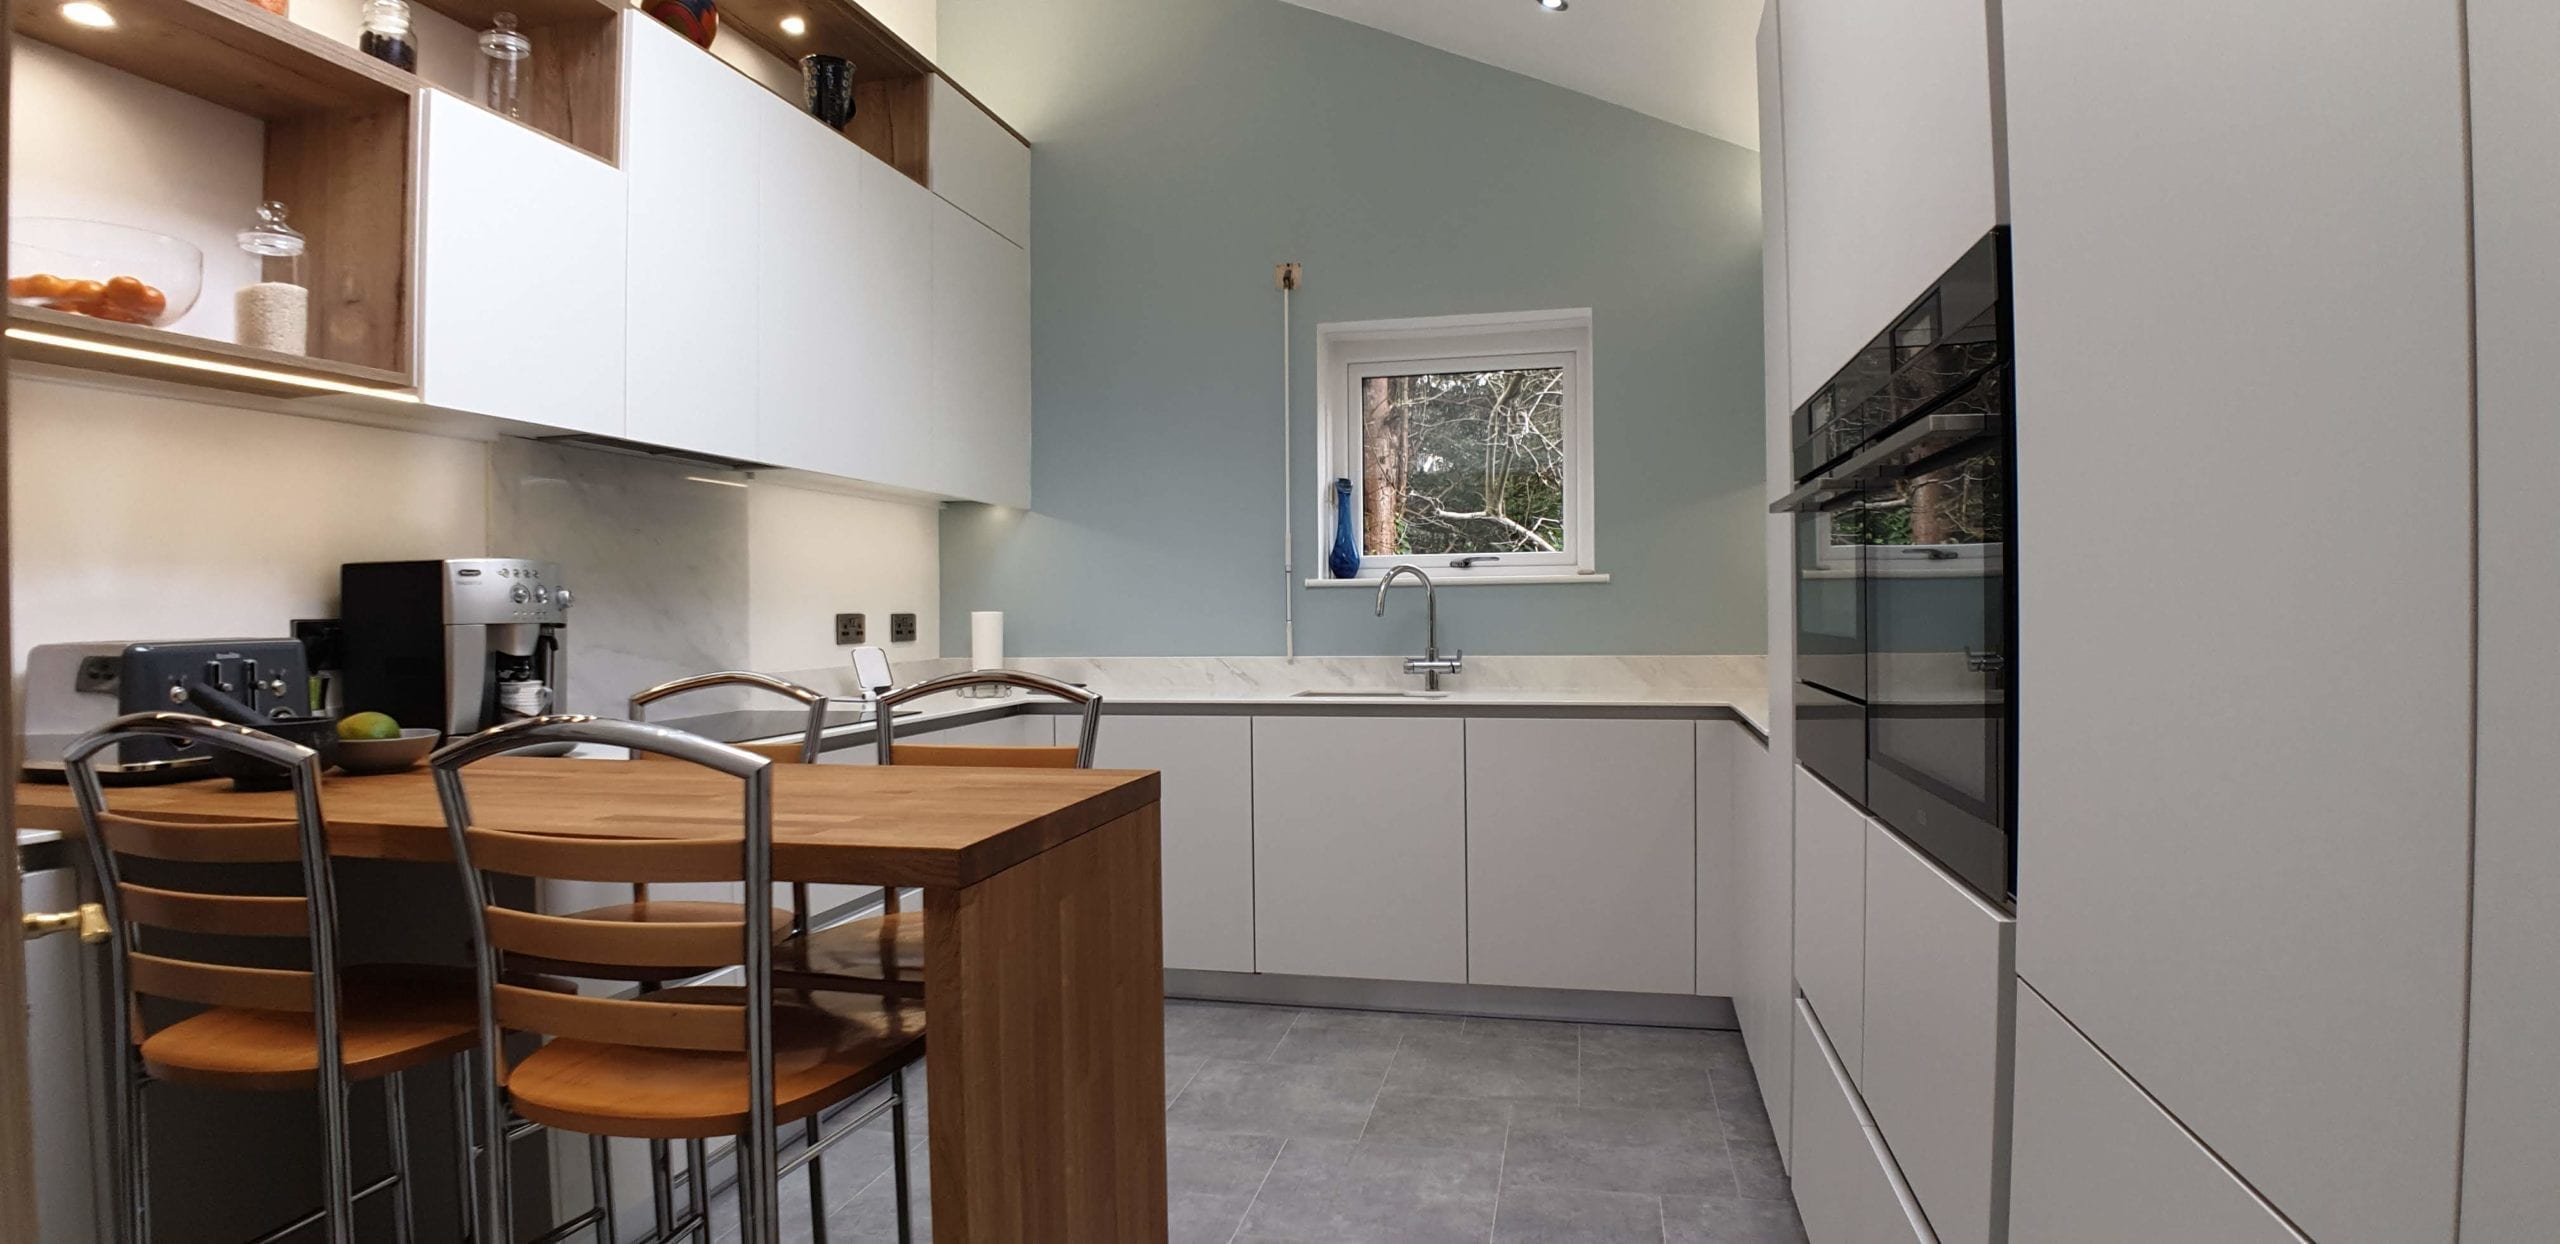 Truly handleless kitchen furniture ilkley